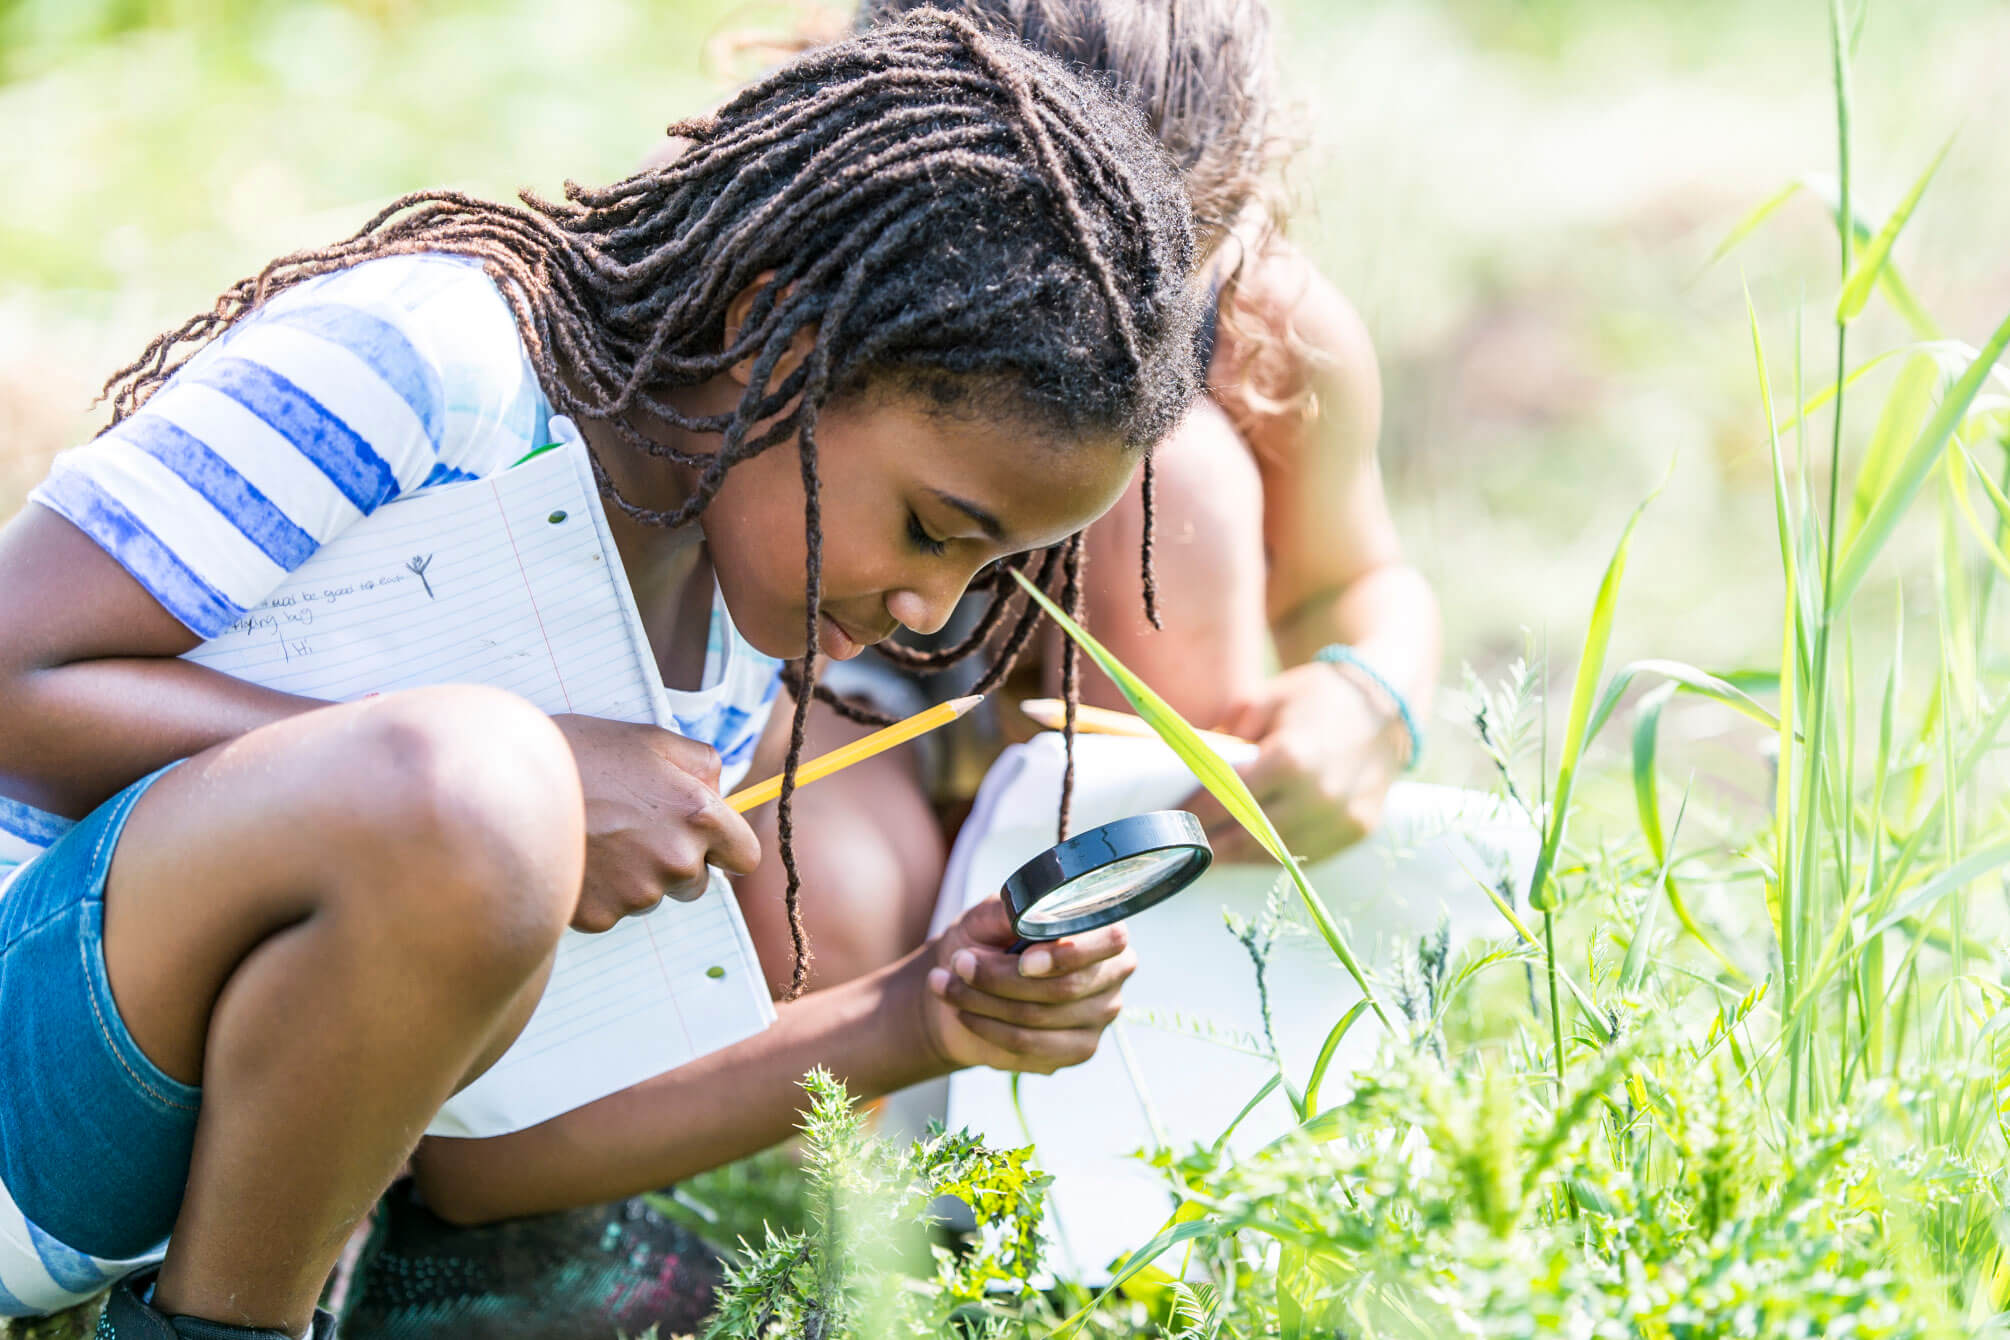 group of elementary school children are outdoors on a sunny day. They are wearing casual clothing. They are learning about nature in science class. A girl of African descent is using a magnifying glass to look for bugs.